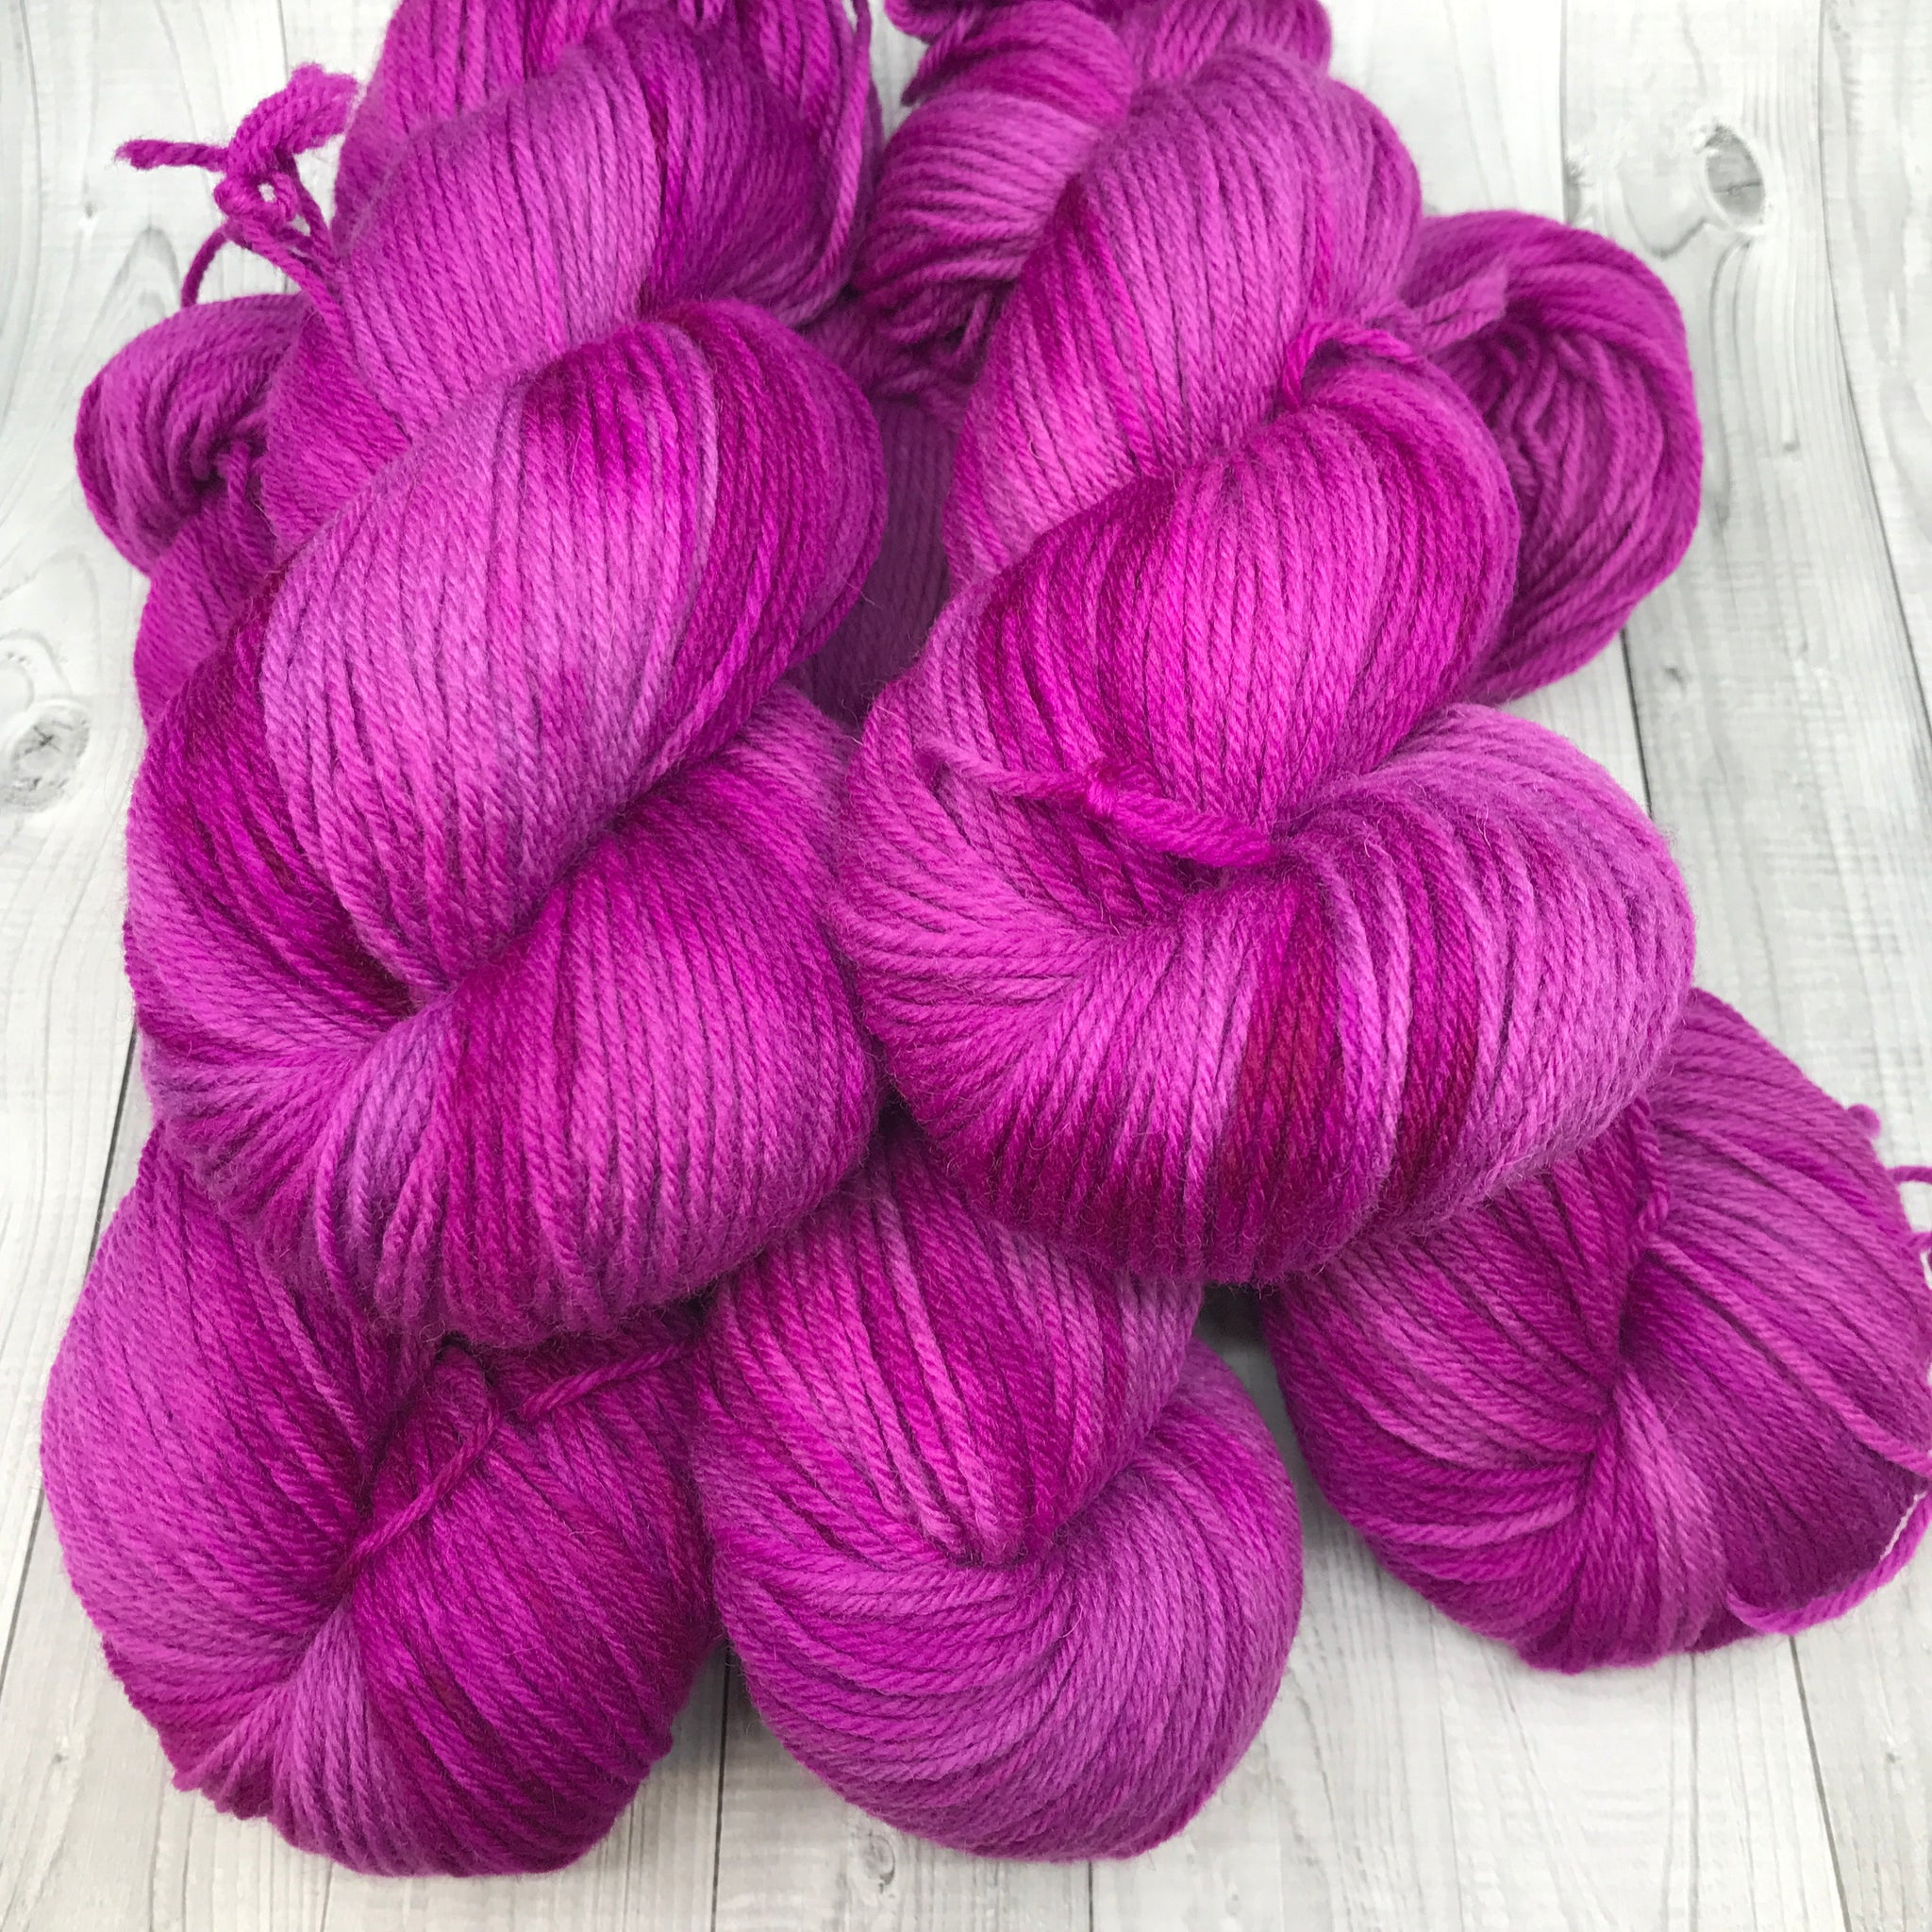 Hunter Highland DK - Fall 2019- Porch Step Mums